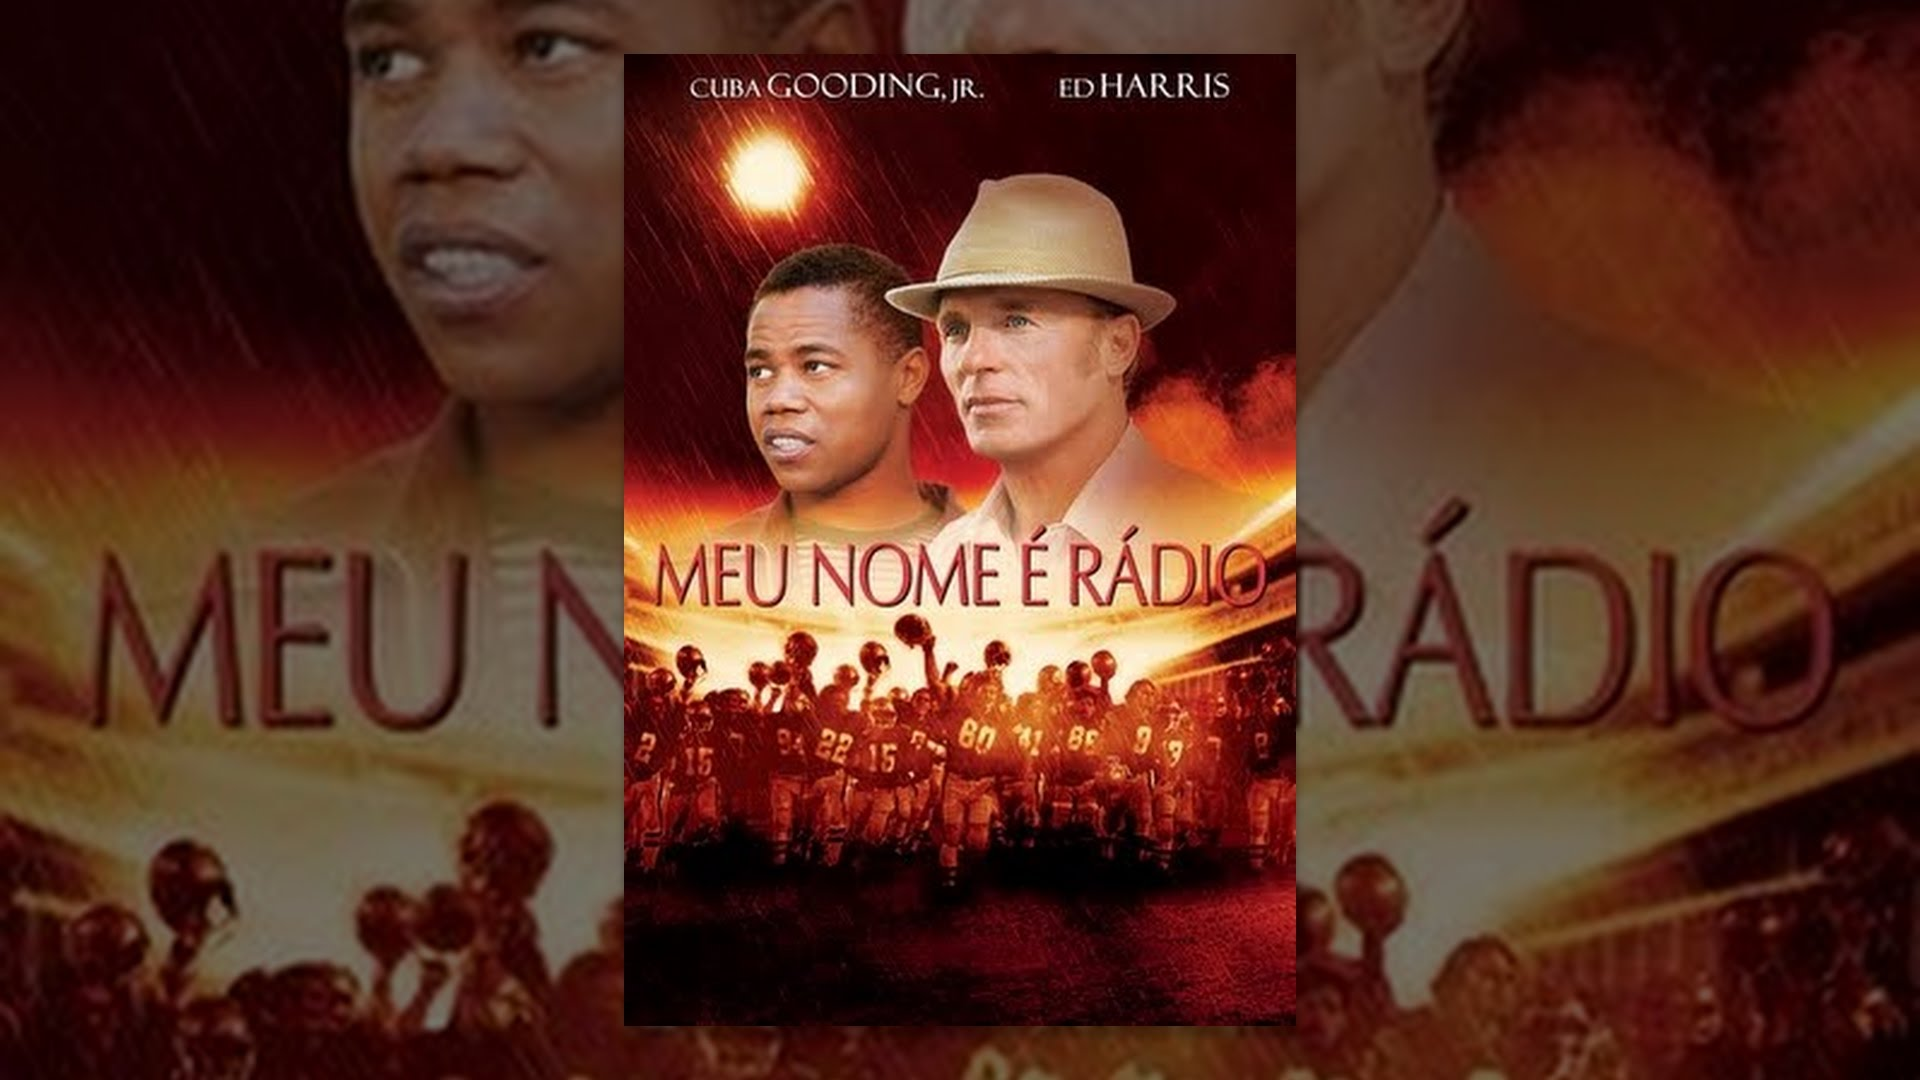 radio movie reflection cuba gooding jr News about cuba gooding jr commentary and archival information about cuba gooding jr from the new york times.